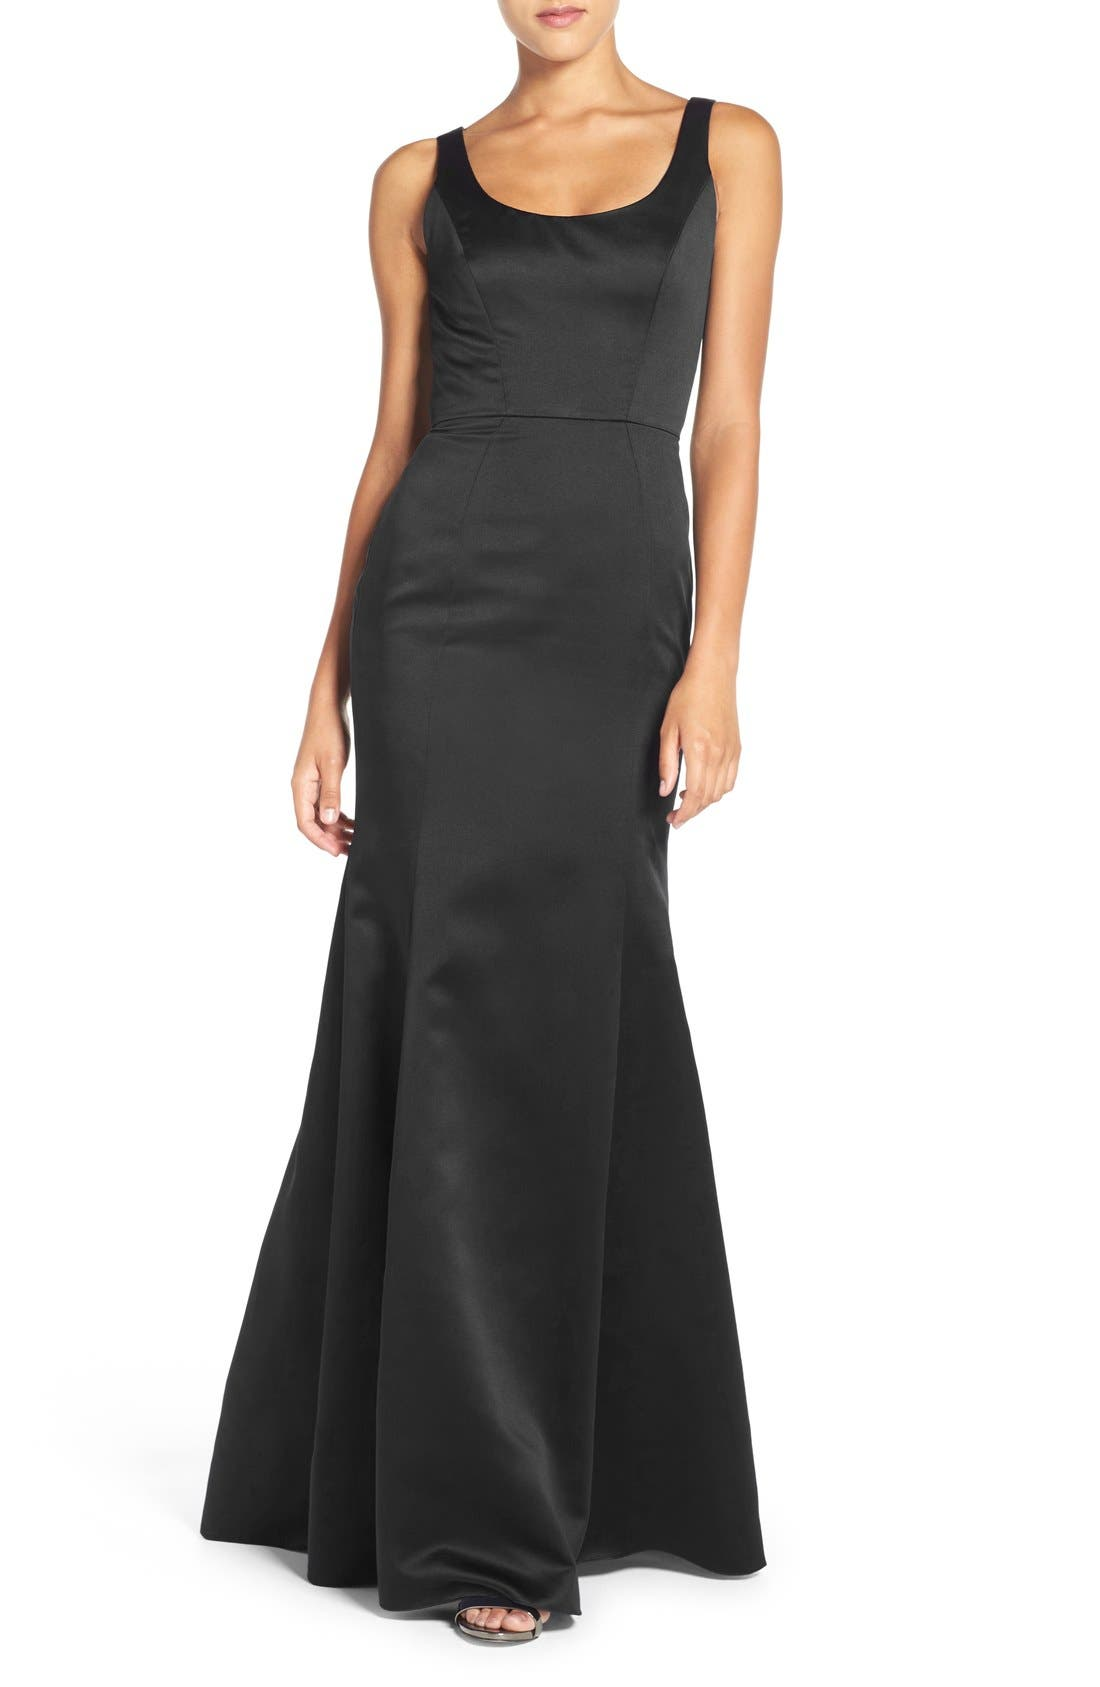 Main Image - Hayley Paige Occasions Back Cutout Scoop Neck Satin Trumpet Gown